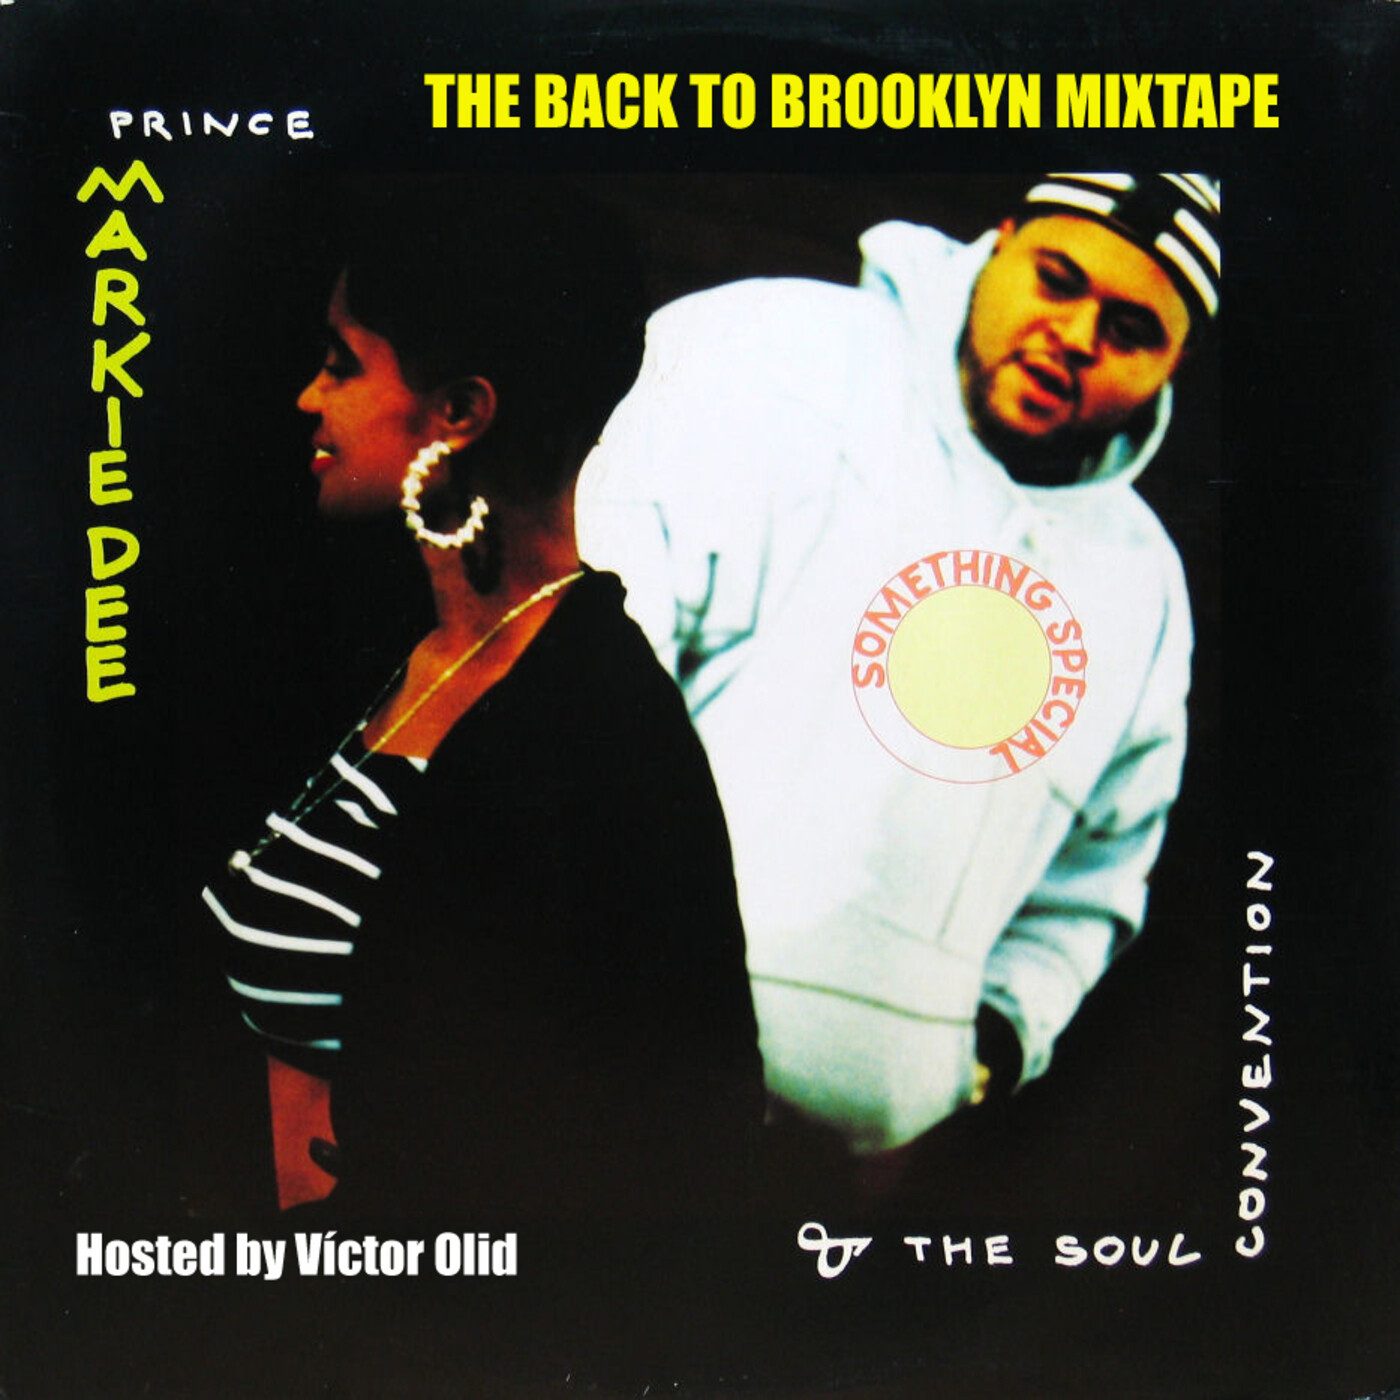 PRINCE MARKIE DEE: THE BACK TO BROOKLYN MIXTAPE hosted by Víctor Olid.